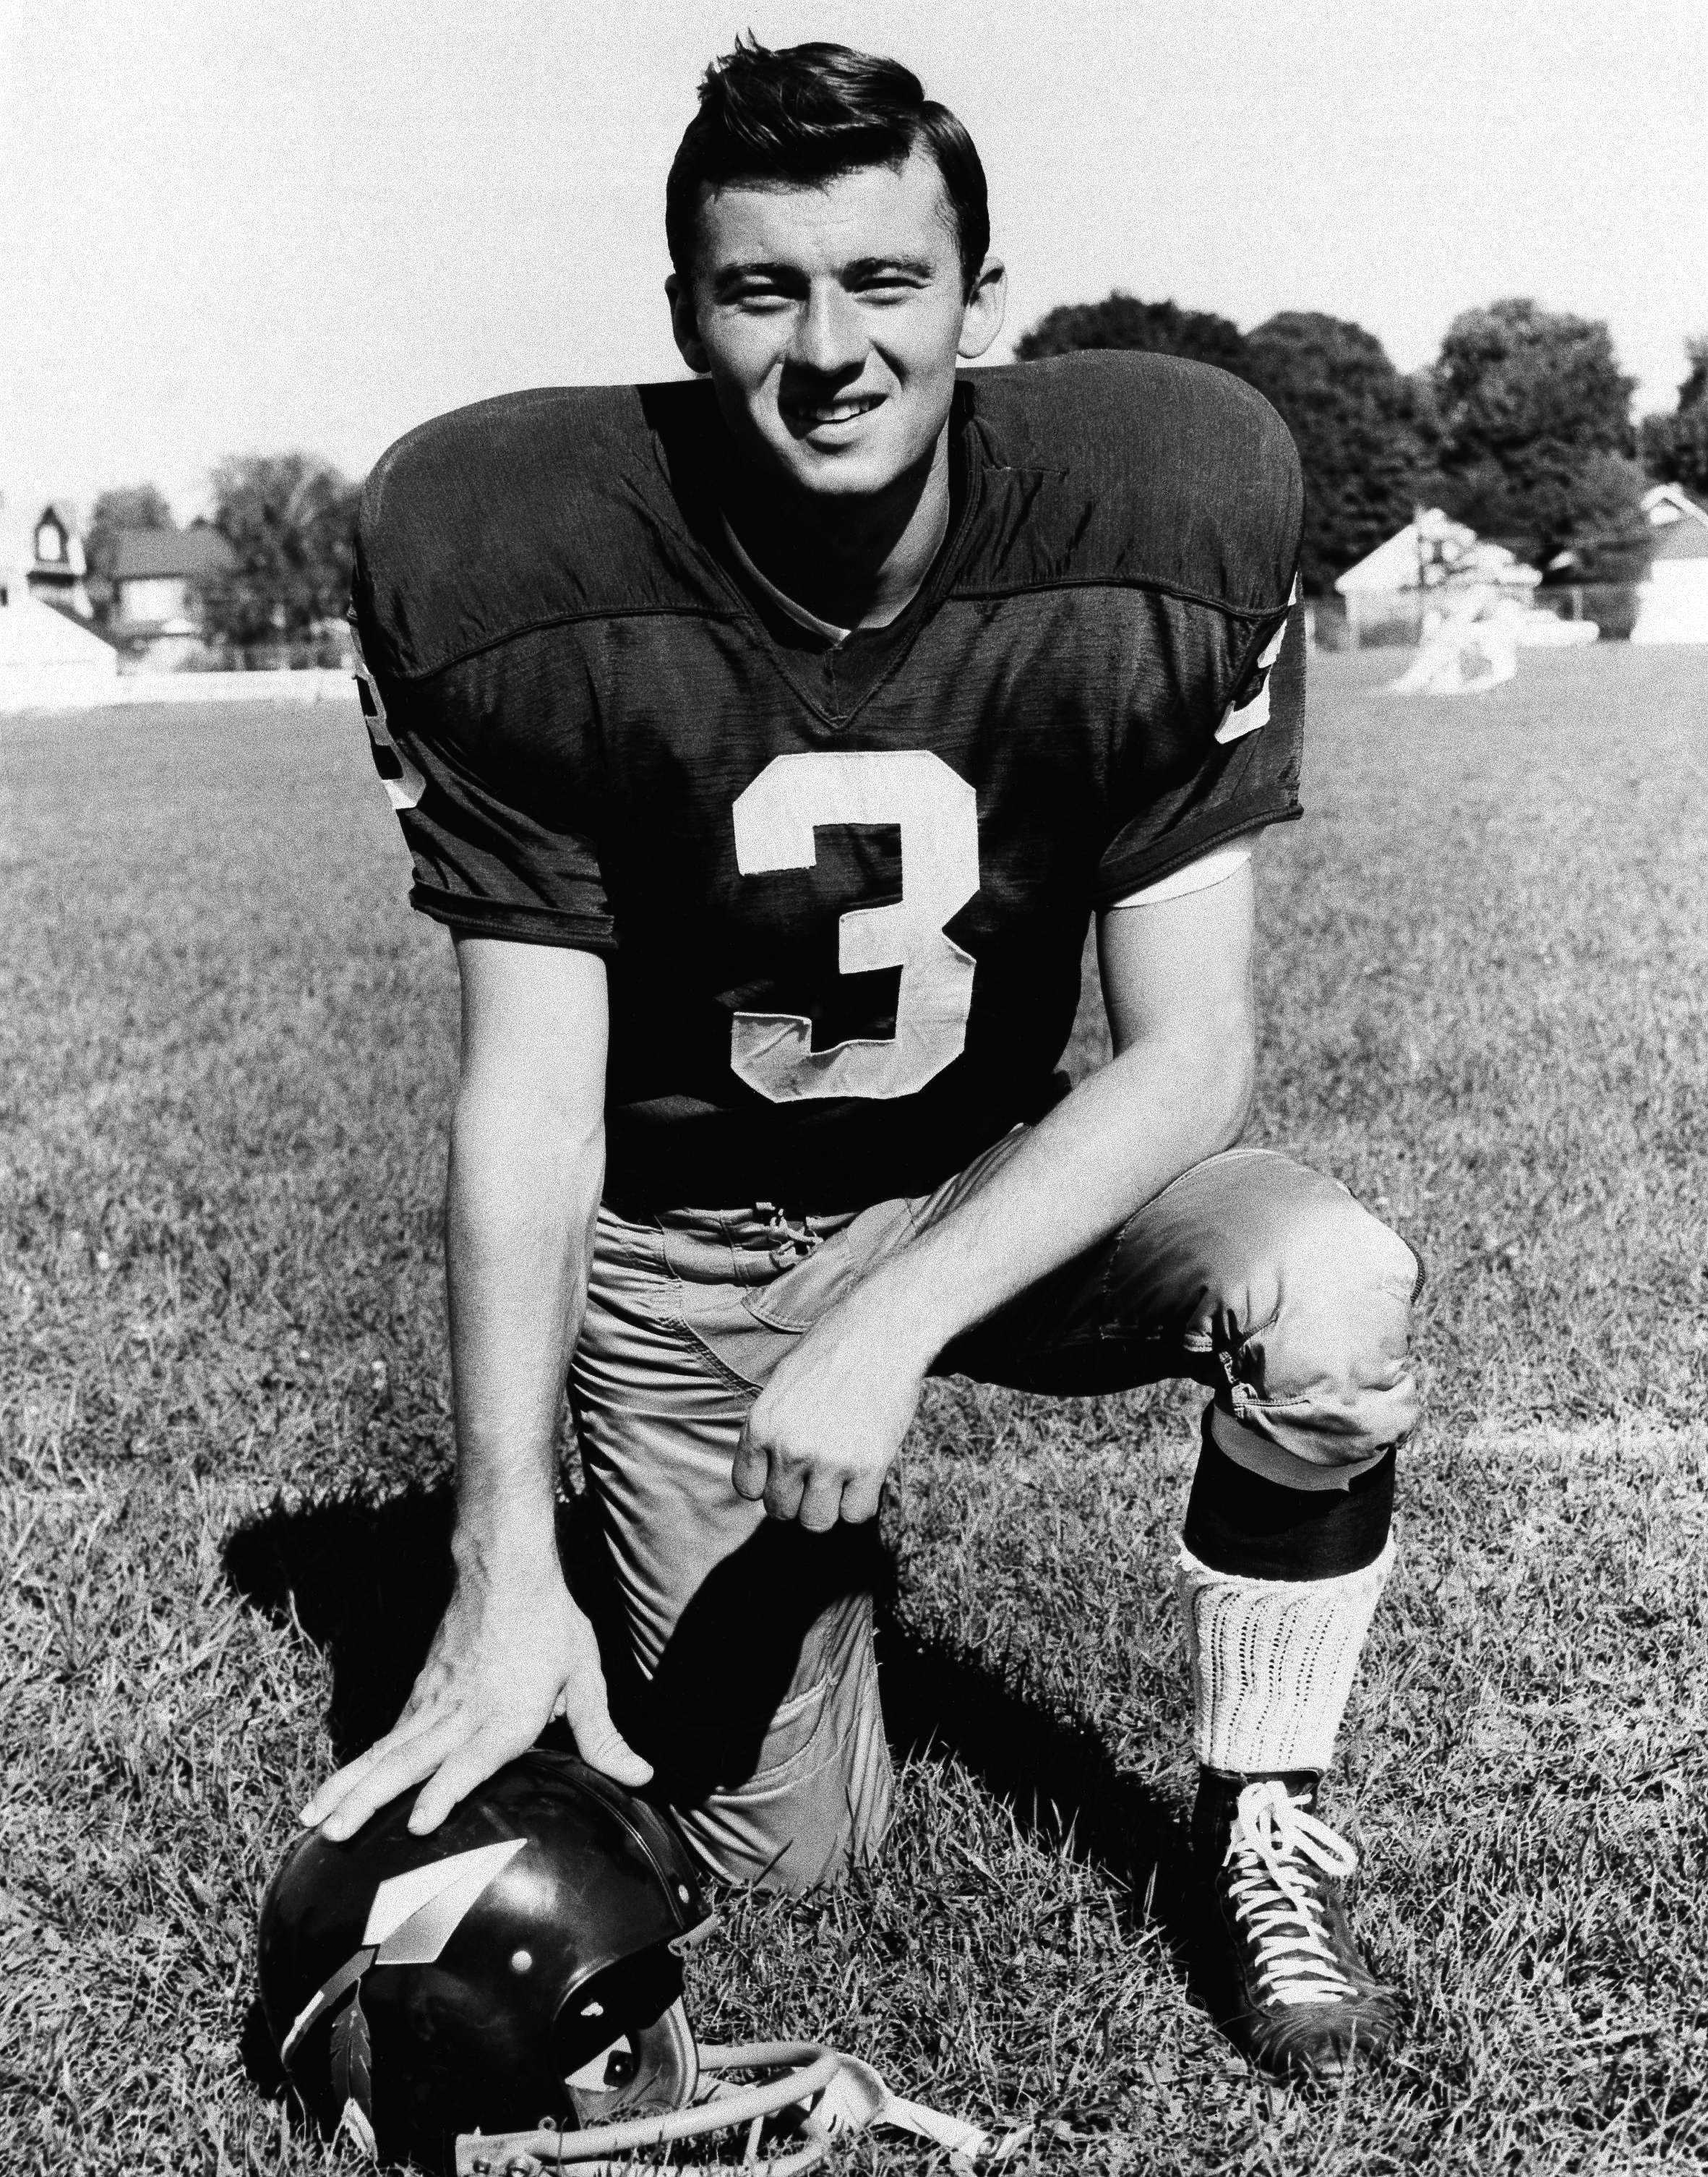 FILE - In this 1966 file photo, football player Charlie Gogolak of the Washington Redskins poses for a photo. One of the first soccer style kickers in football, Gogolak was the first kicker selected in the first round when he was taken sixth overall by th